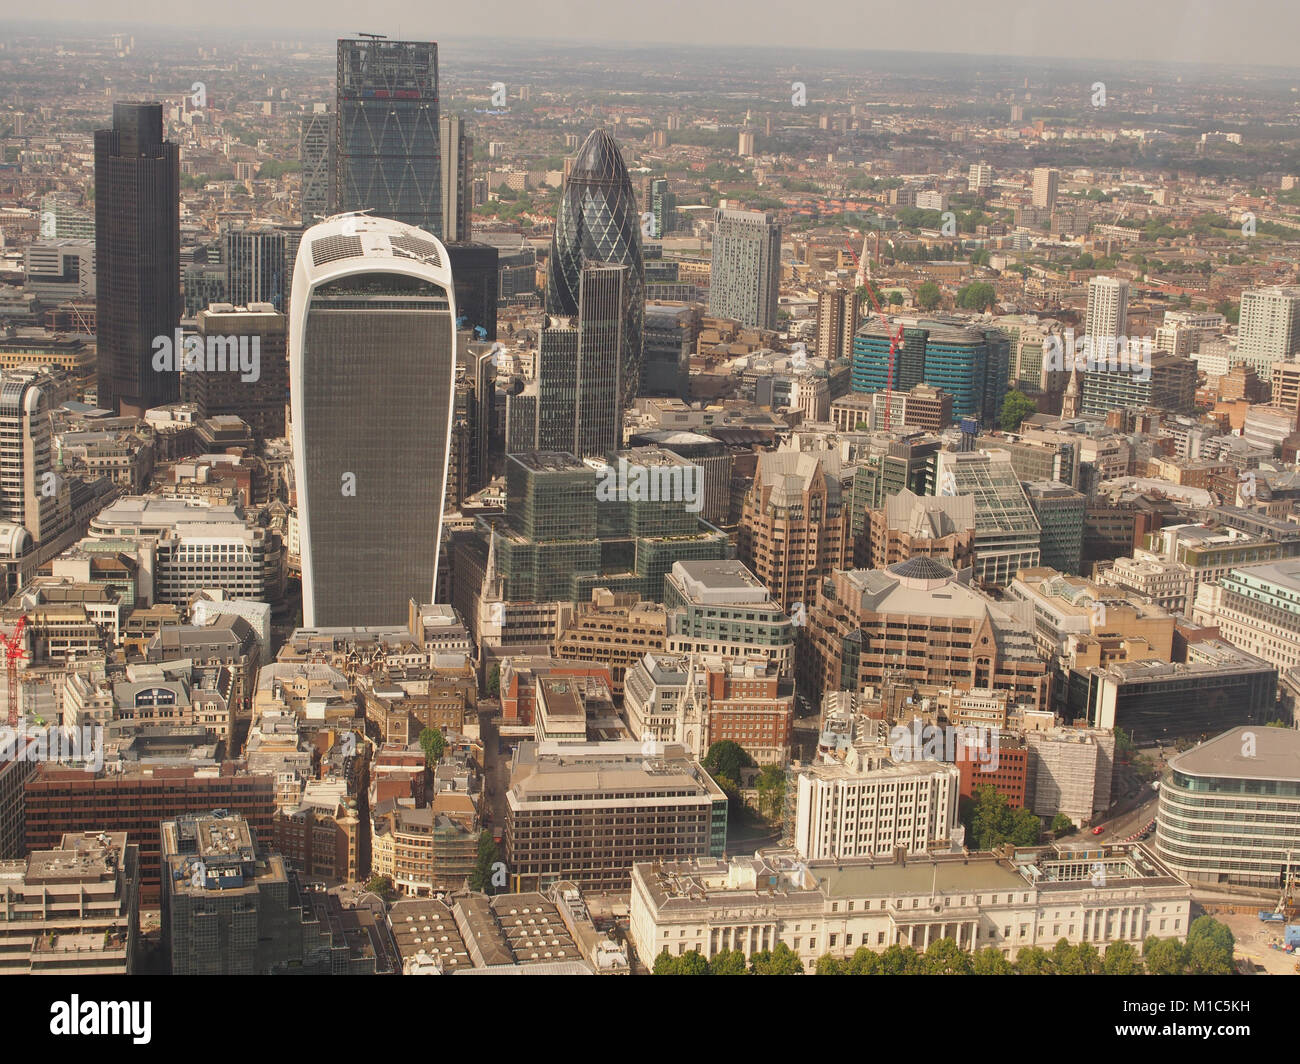 A view from the top viewing floor of The Shard, London, looking across the River Thames to the City of London - Stock Image